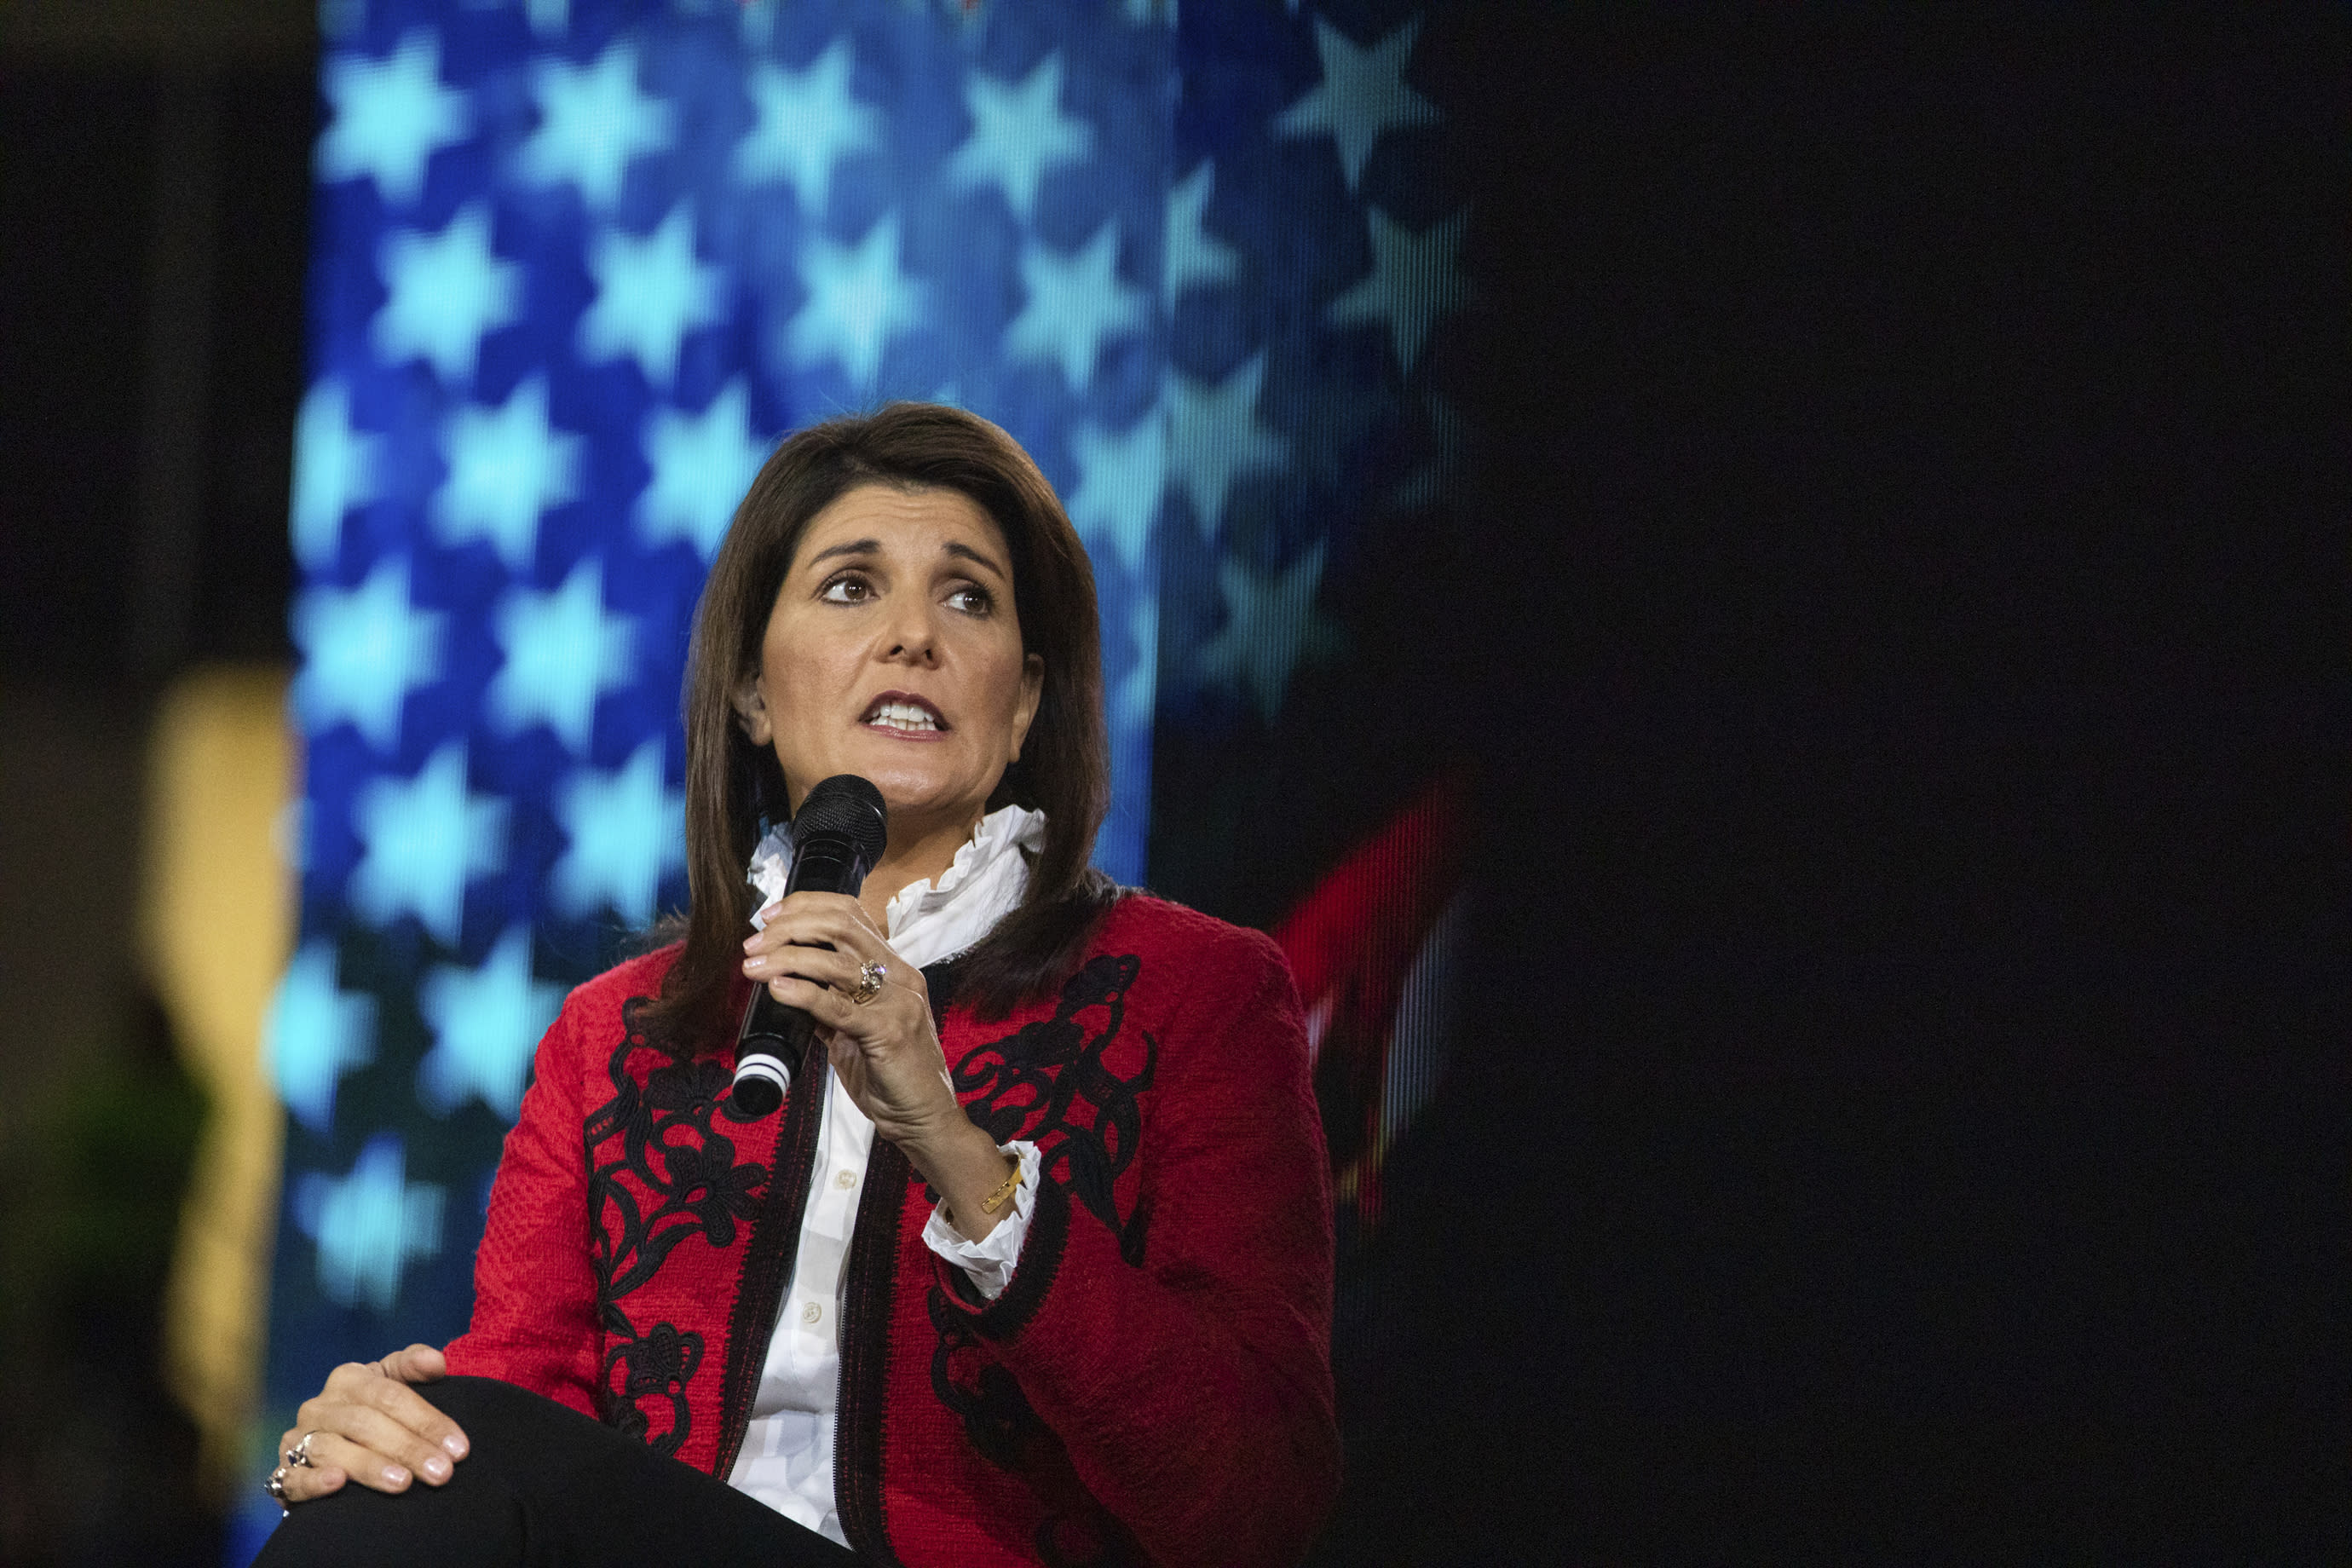 Could Haley's role in Trump administration taint a 2024 bid?